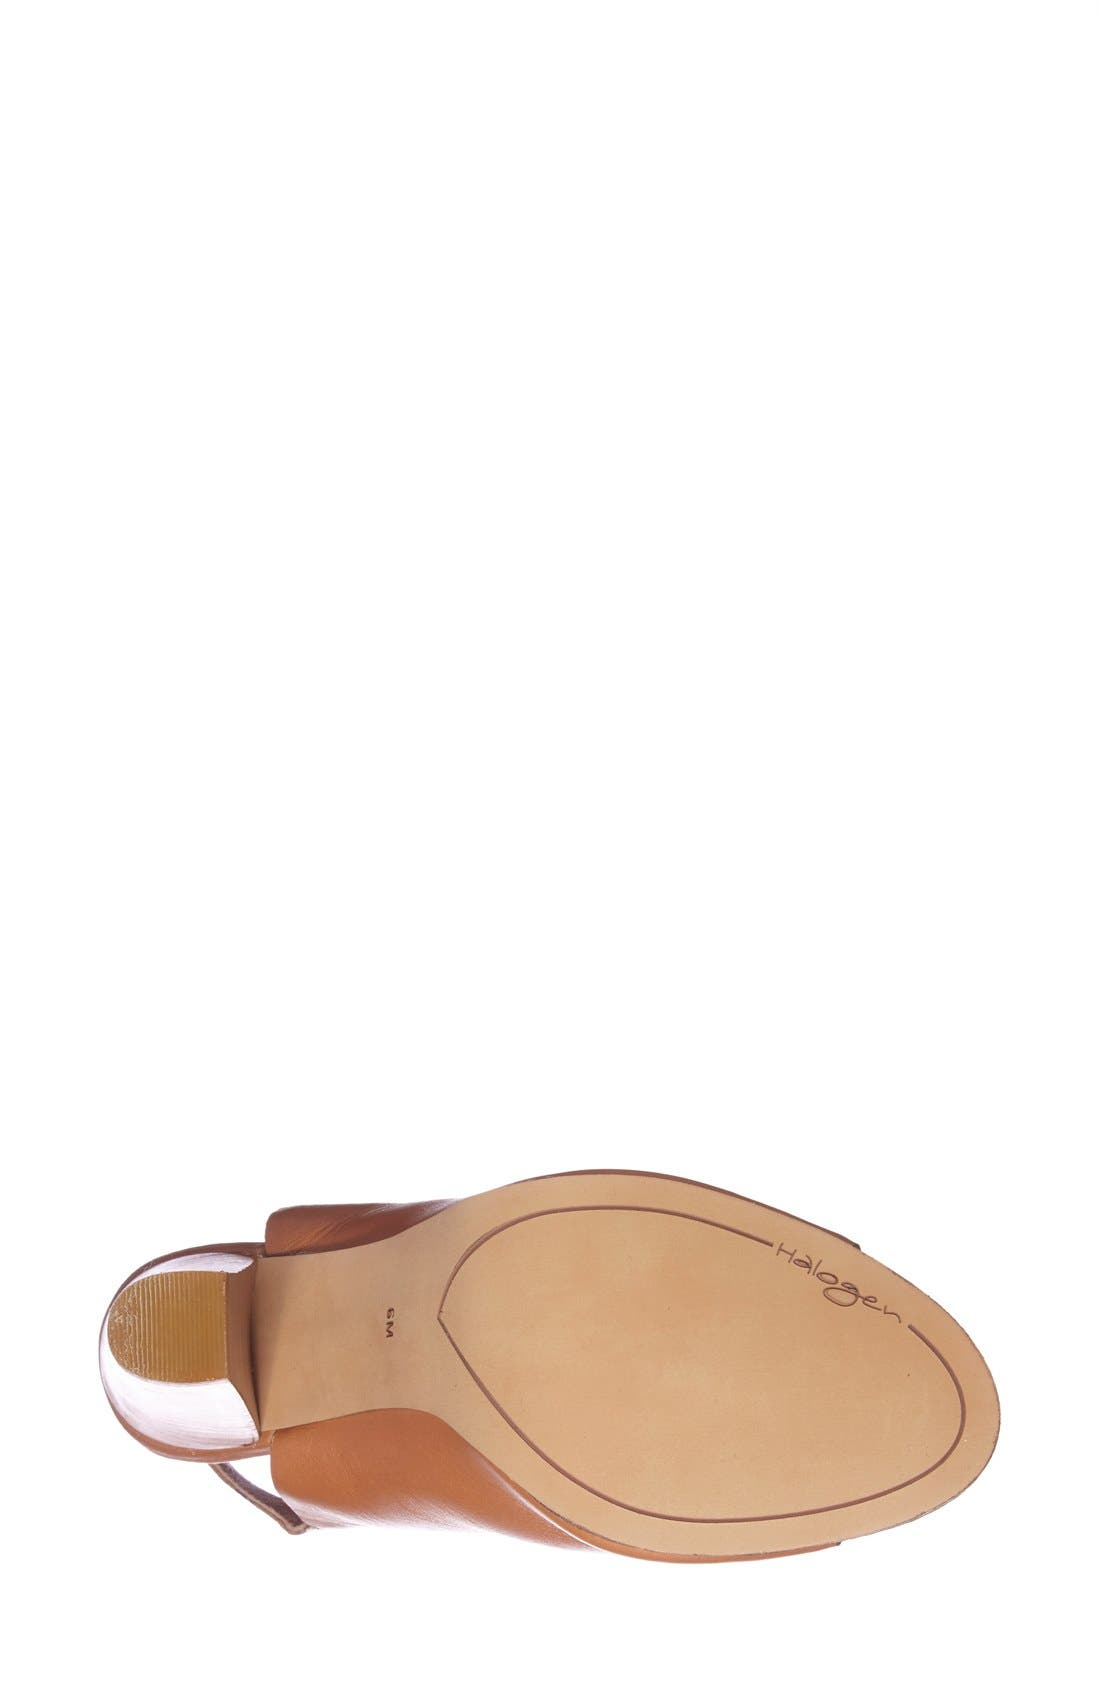 Alternate Image 4  - Halogen 'Sasha' Leather Sandal (Women)